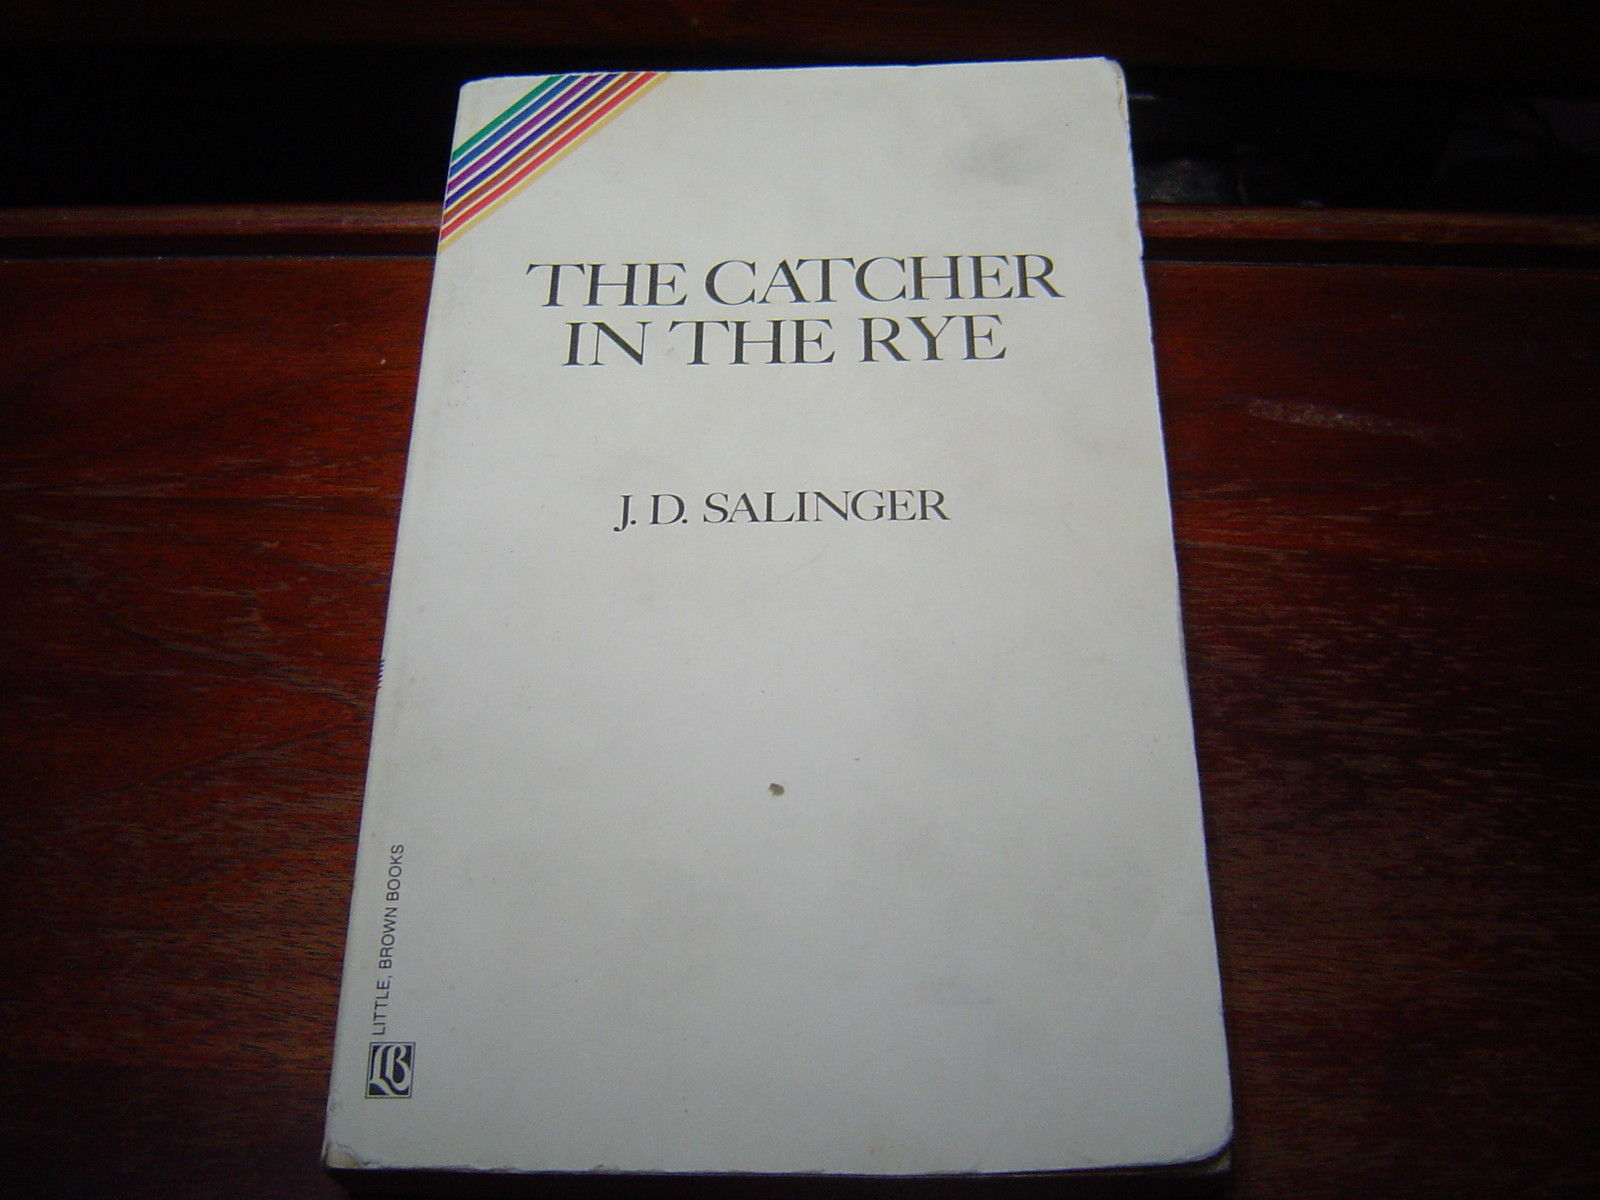 preserving innocence in j d salingers the Salinger's novel, the catcher in the rye, the reader is introduced to holden caulfield, a very troubled teenager who is fixated on protecting the innocent from the cruel realities of the world the very title of this novel is a metaphor holden uses to explain his obsession again, he displays how.